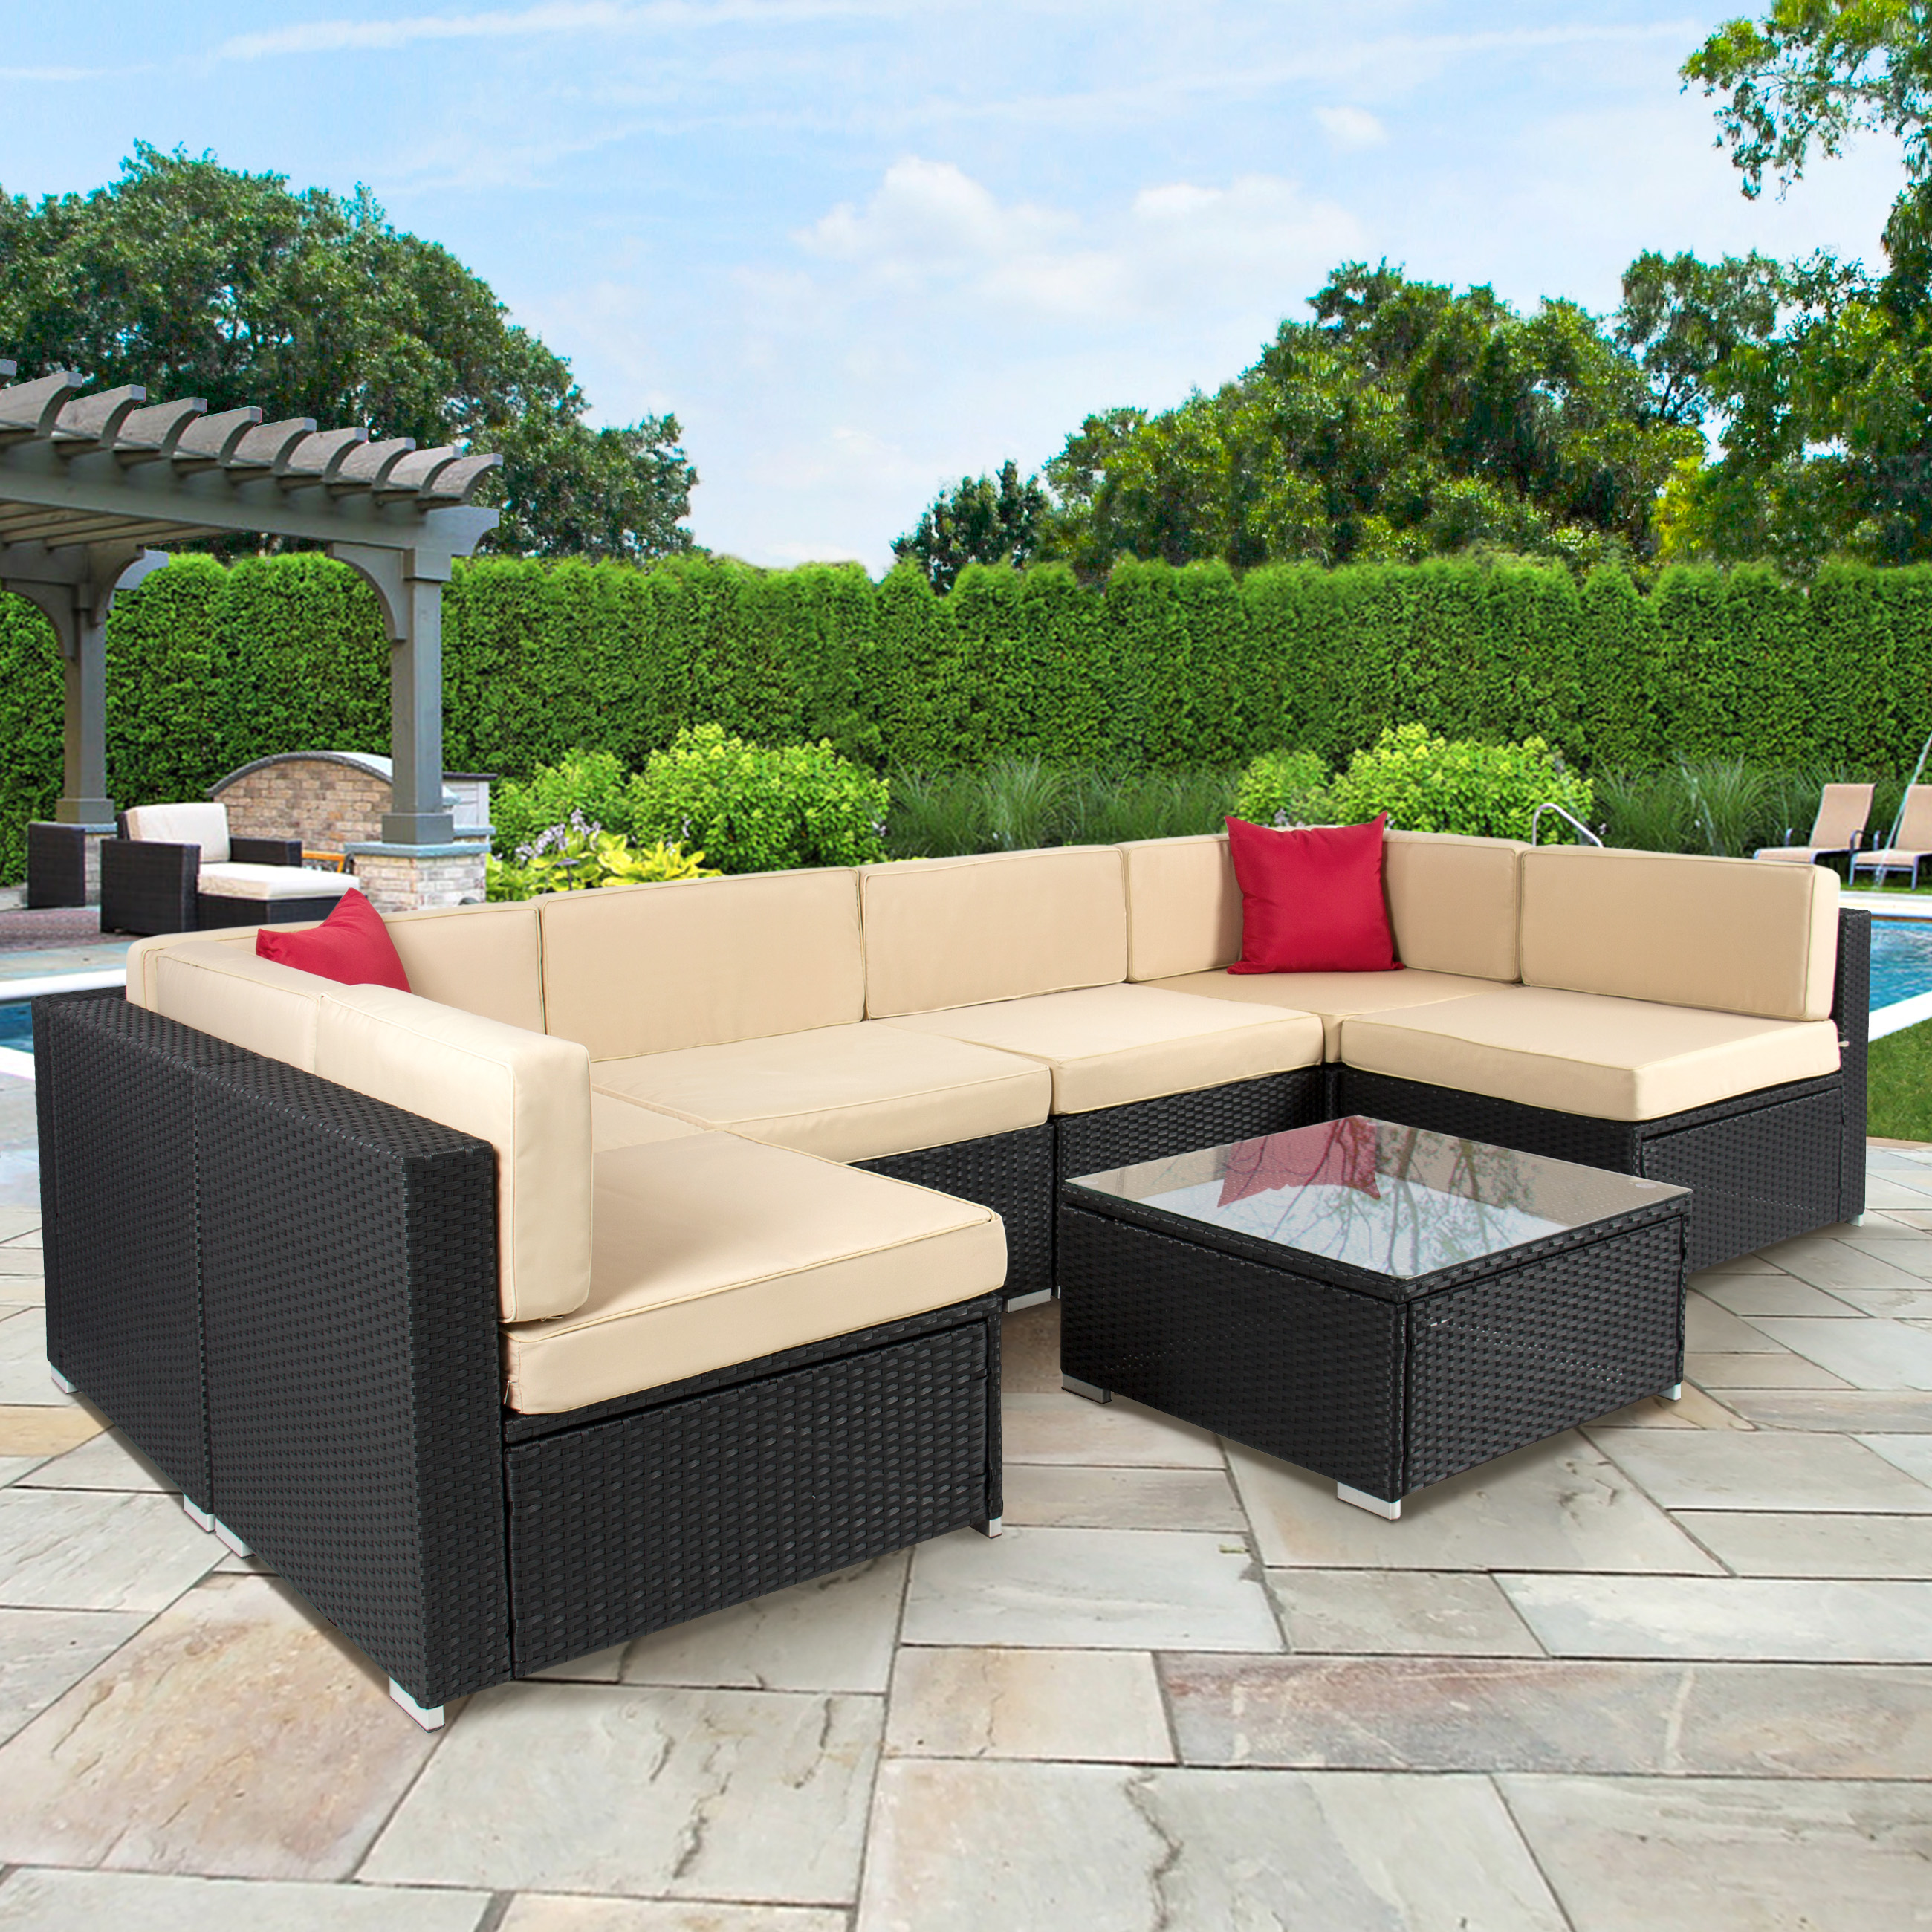 How to make a choice on the best rattan sofas